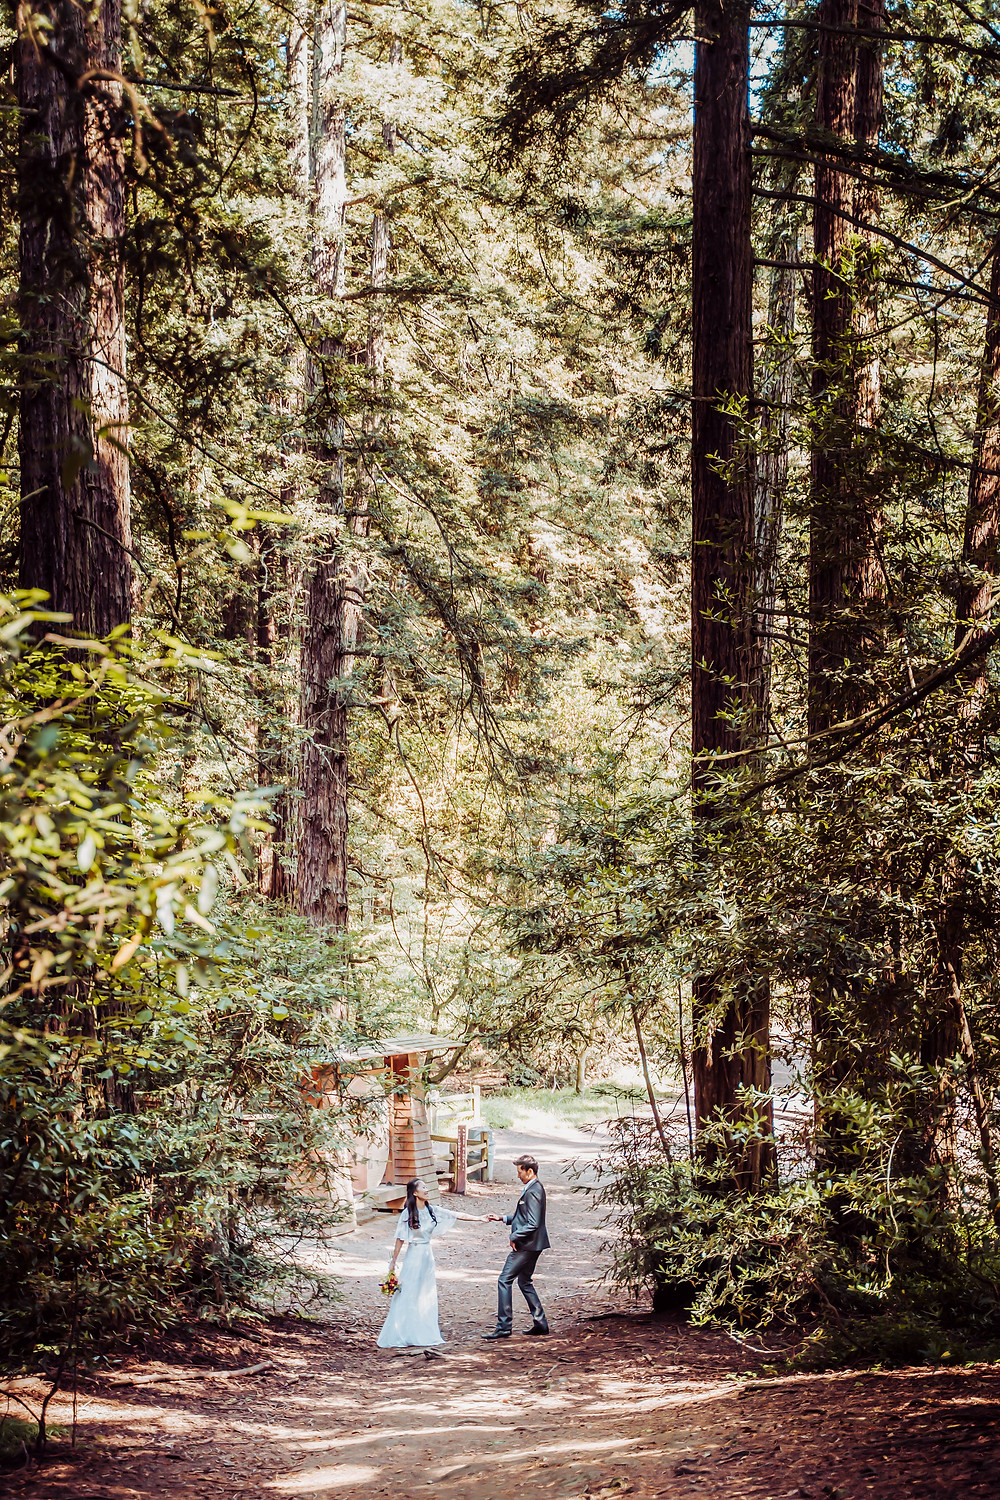 A wedding couple dancing in the middle of a trail surrounded by the tall redwood trees of California during their elopement day